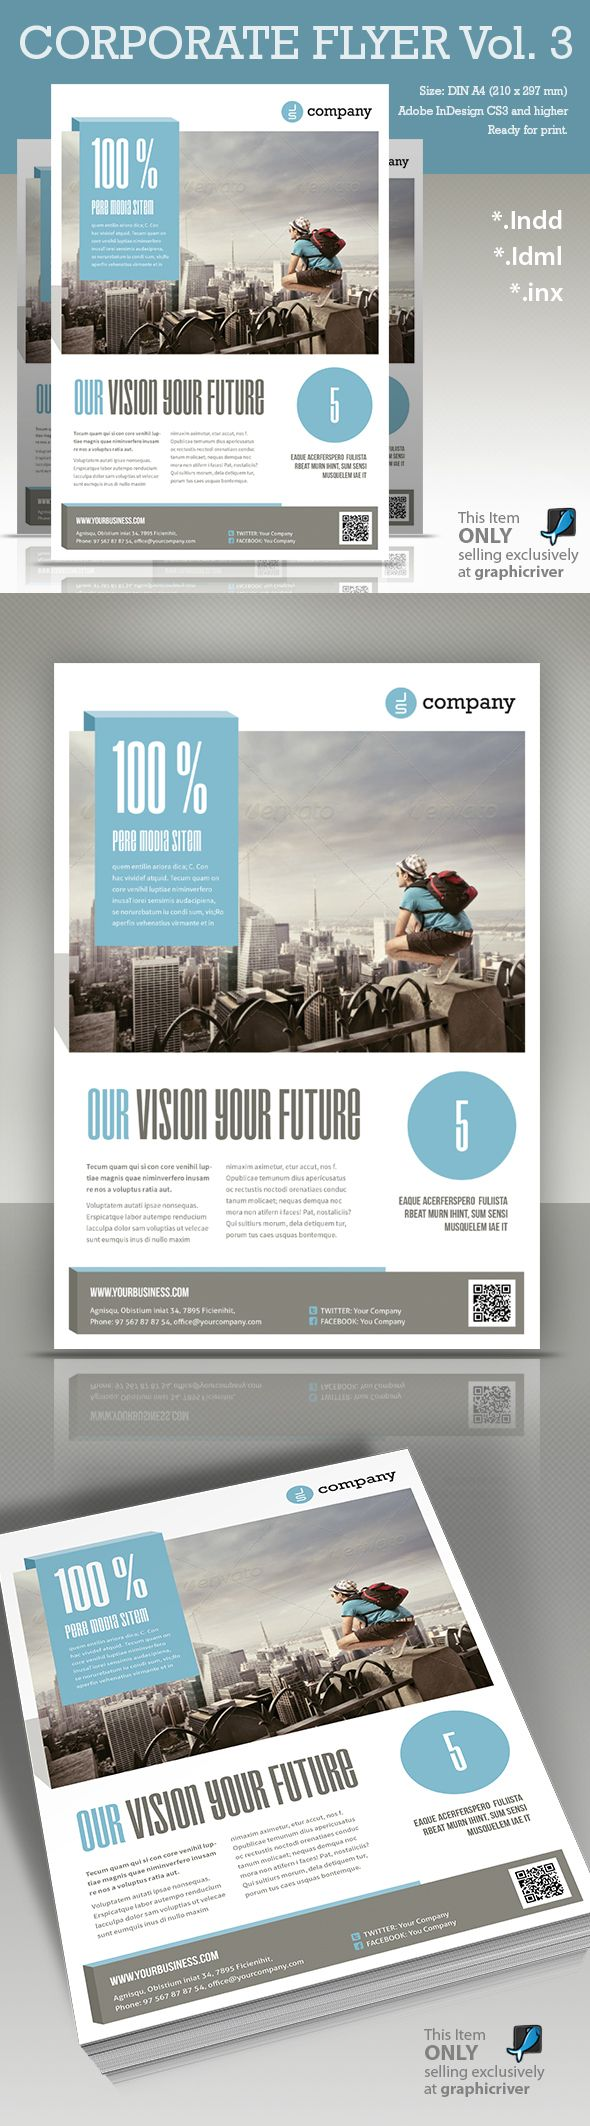 Corporate Flyer vol. 3 by Paulnomade Paulnomade, via Behance